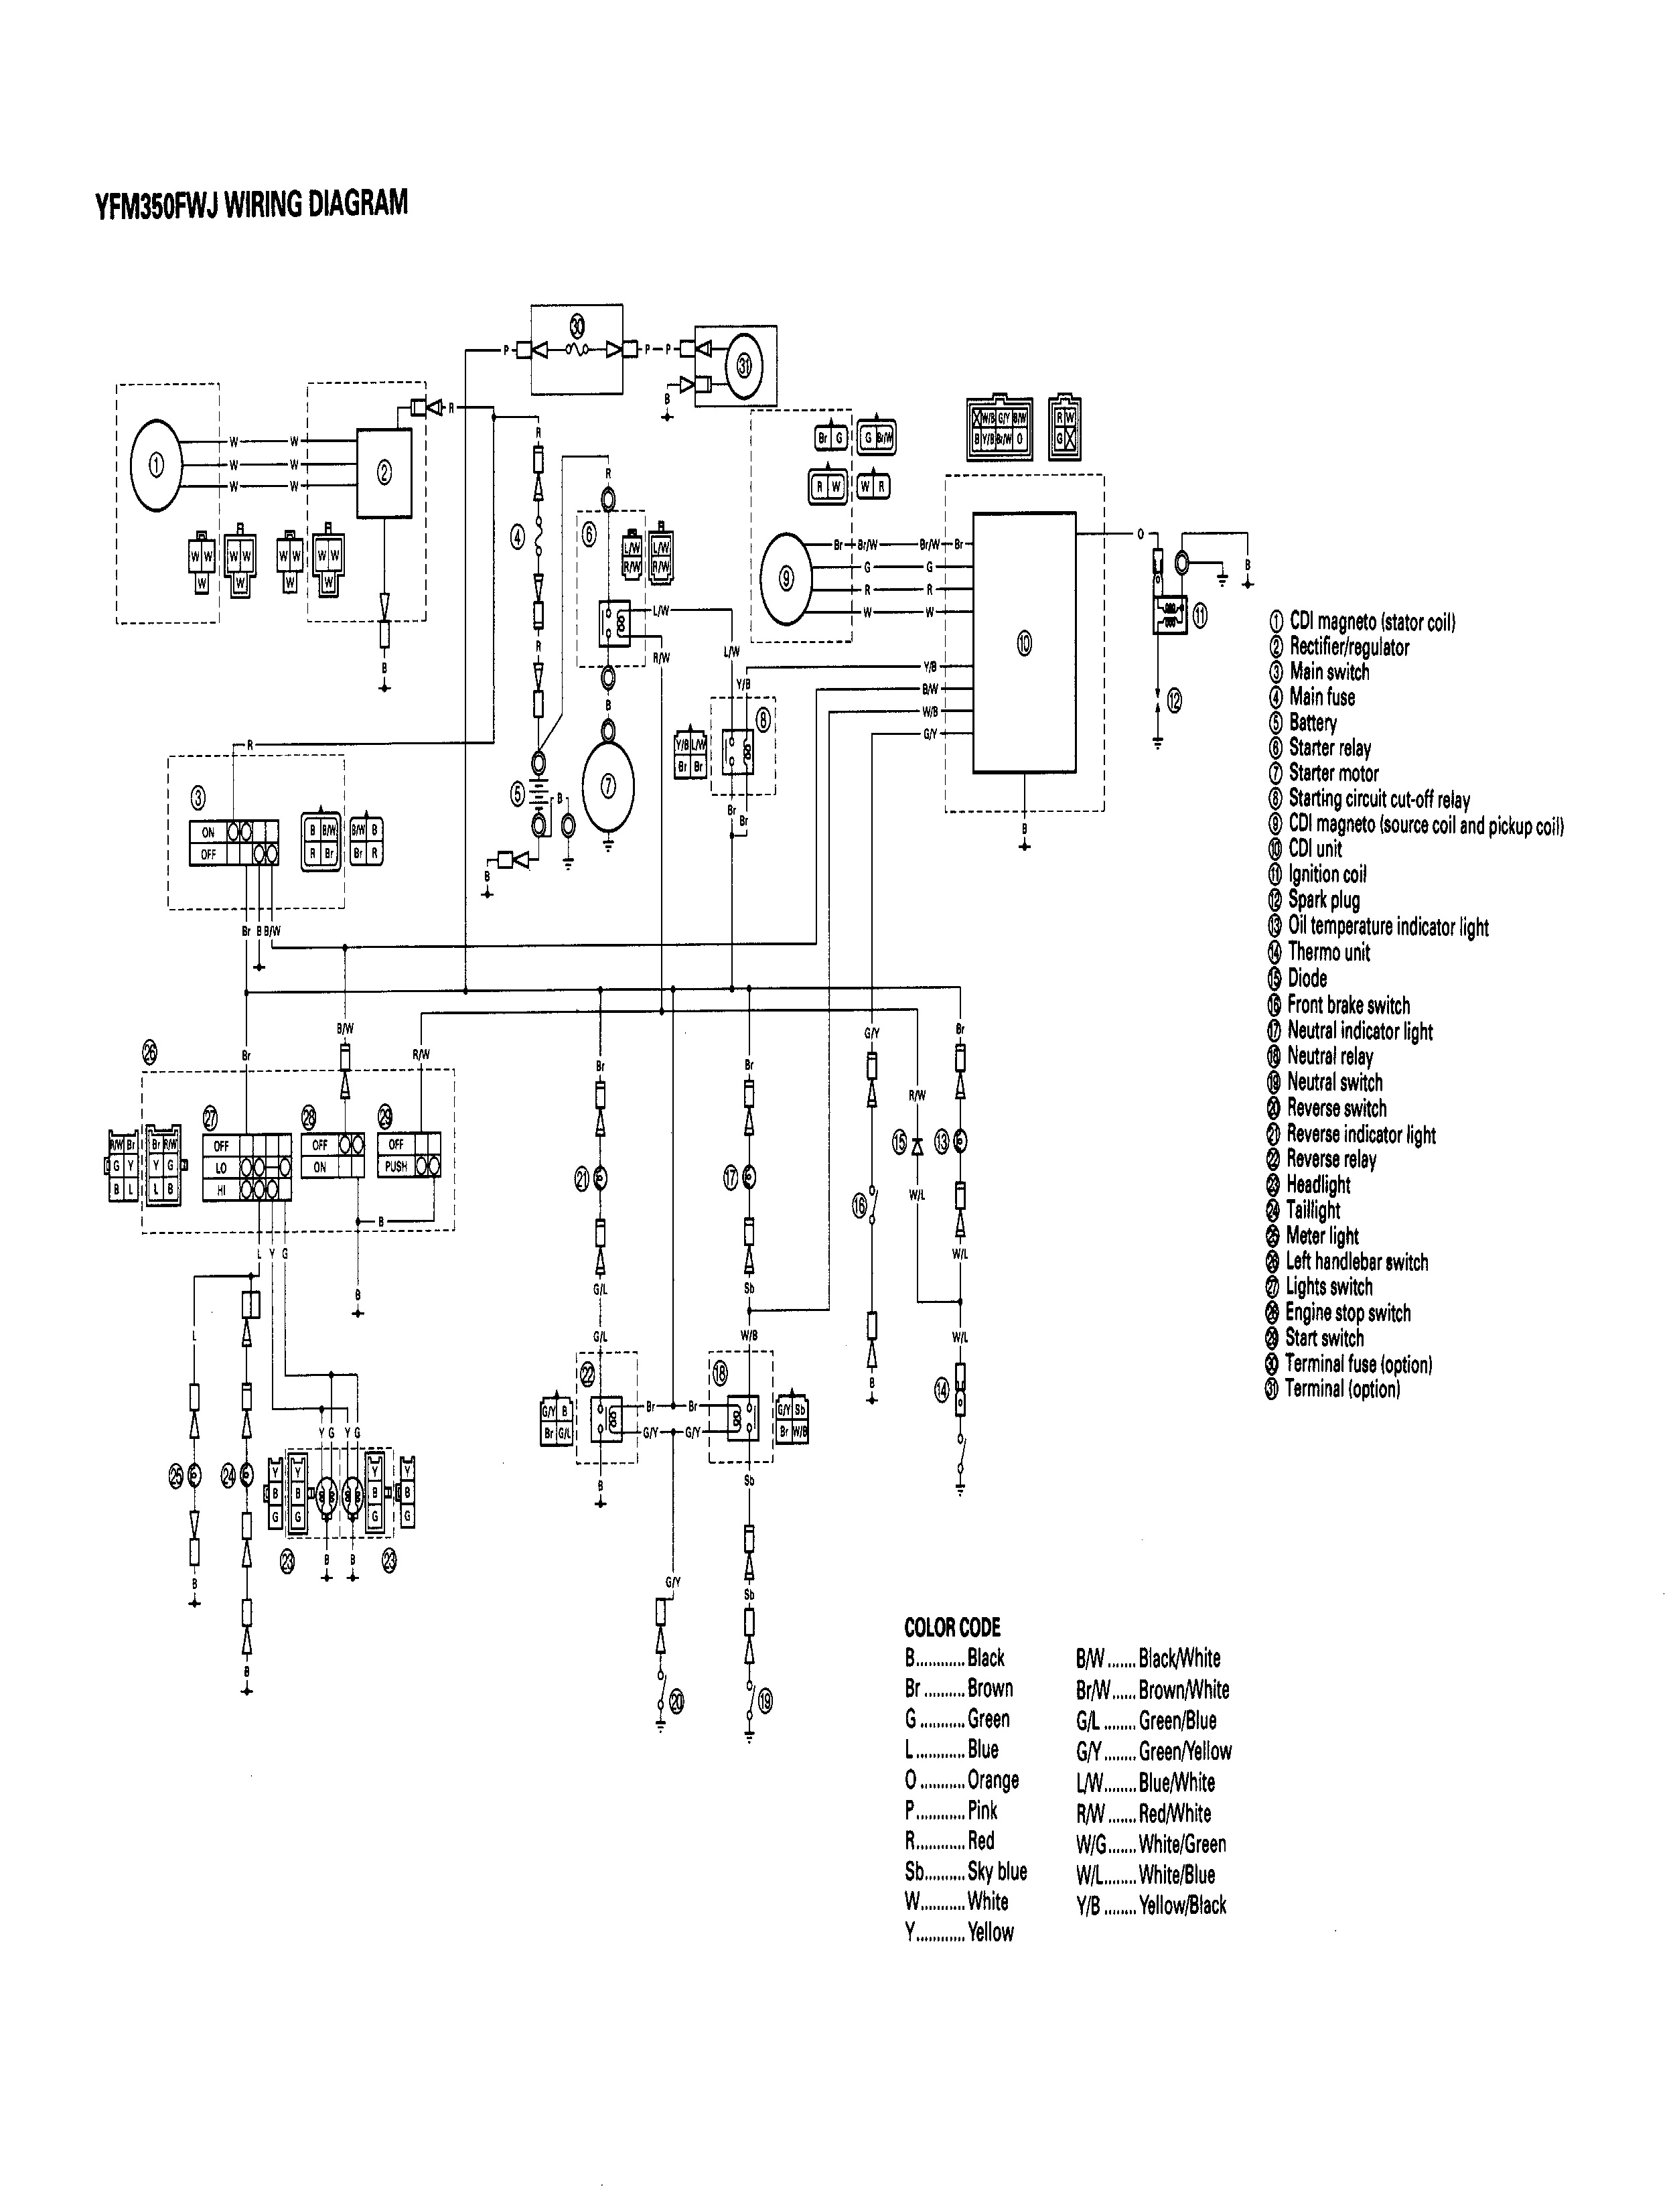 1997 yfm 600 wiring diagram 1997 wiring diagrams